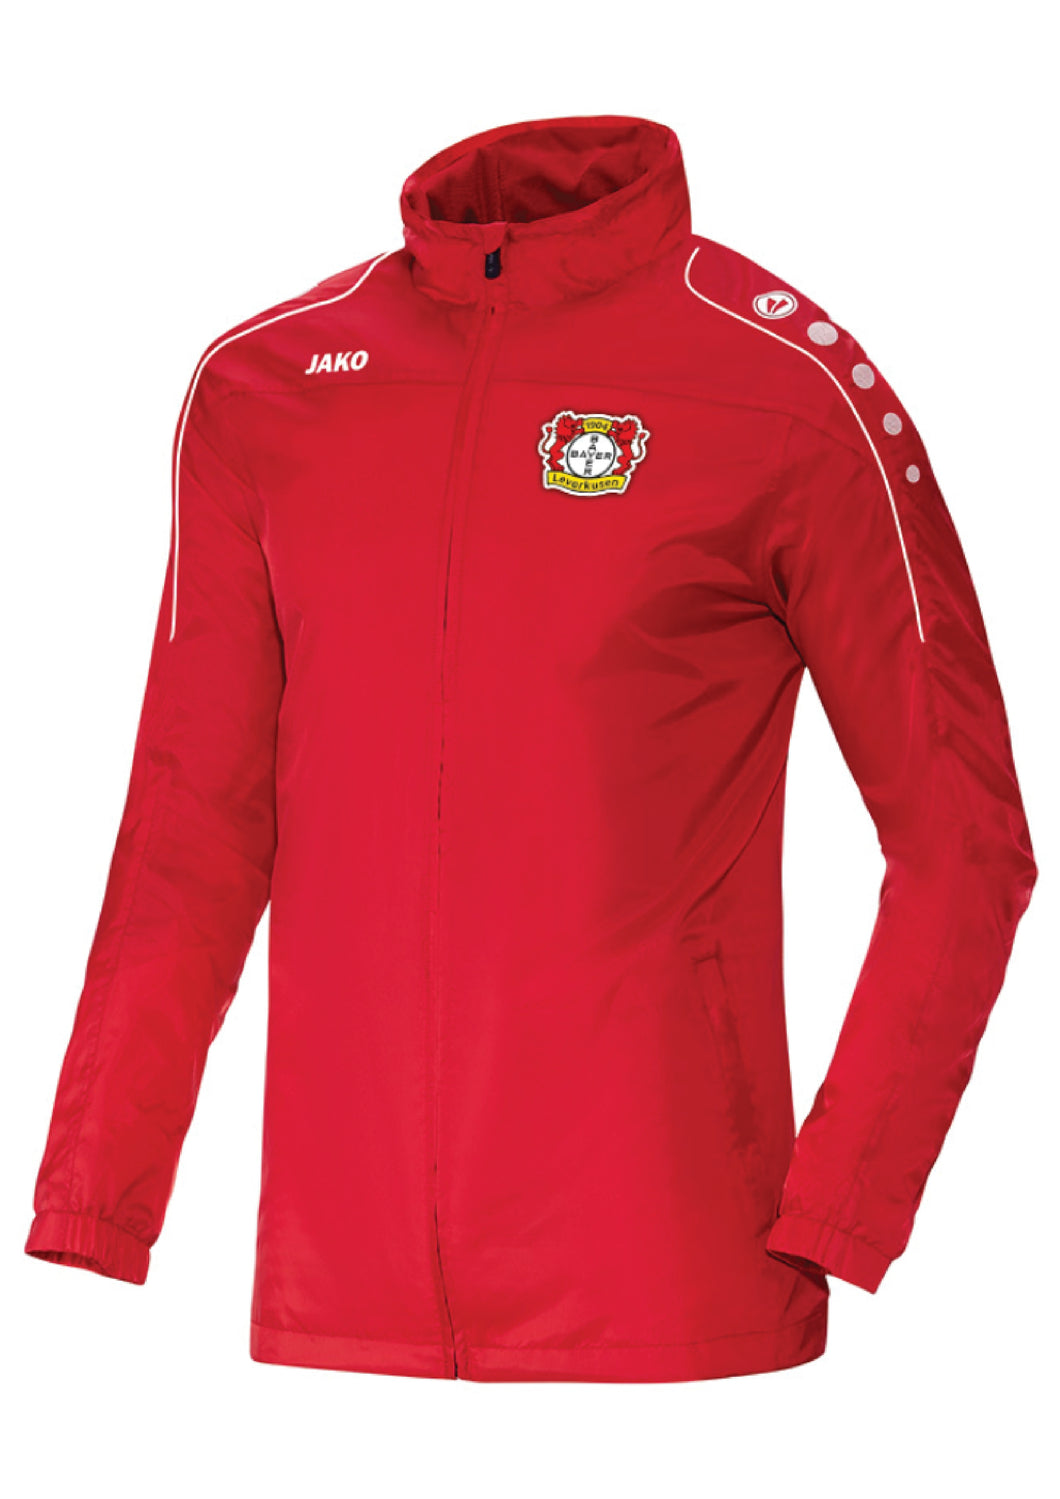 ADULT JAKO BAYER 04 LEVERKUSEN RAIN JACKET TEAM BA7401F